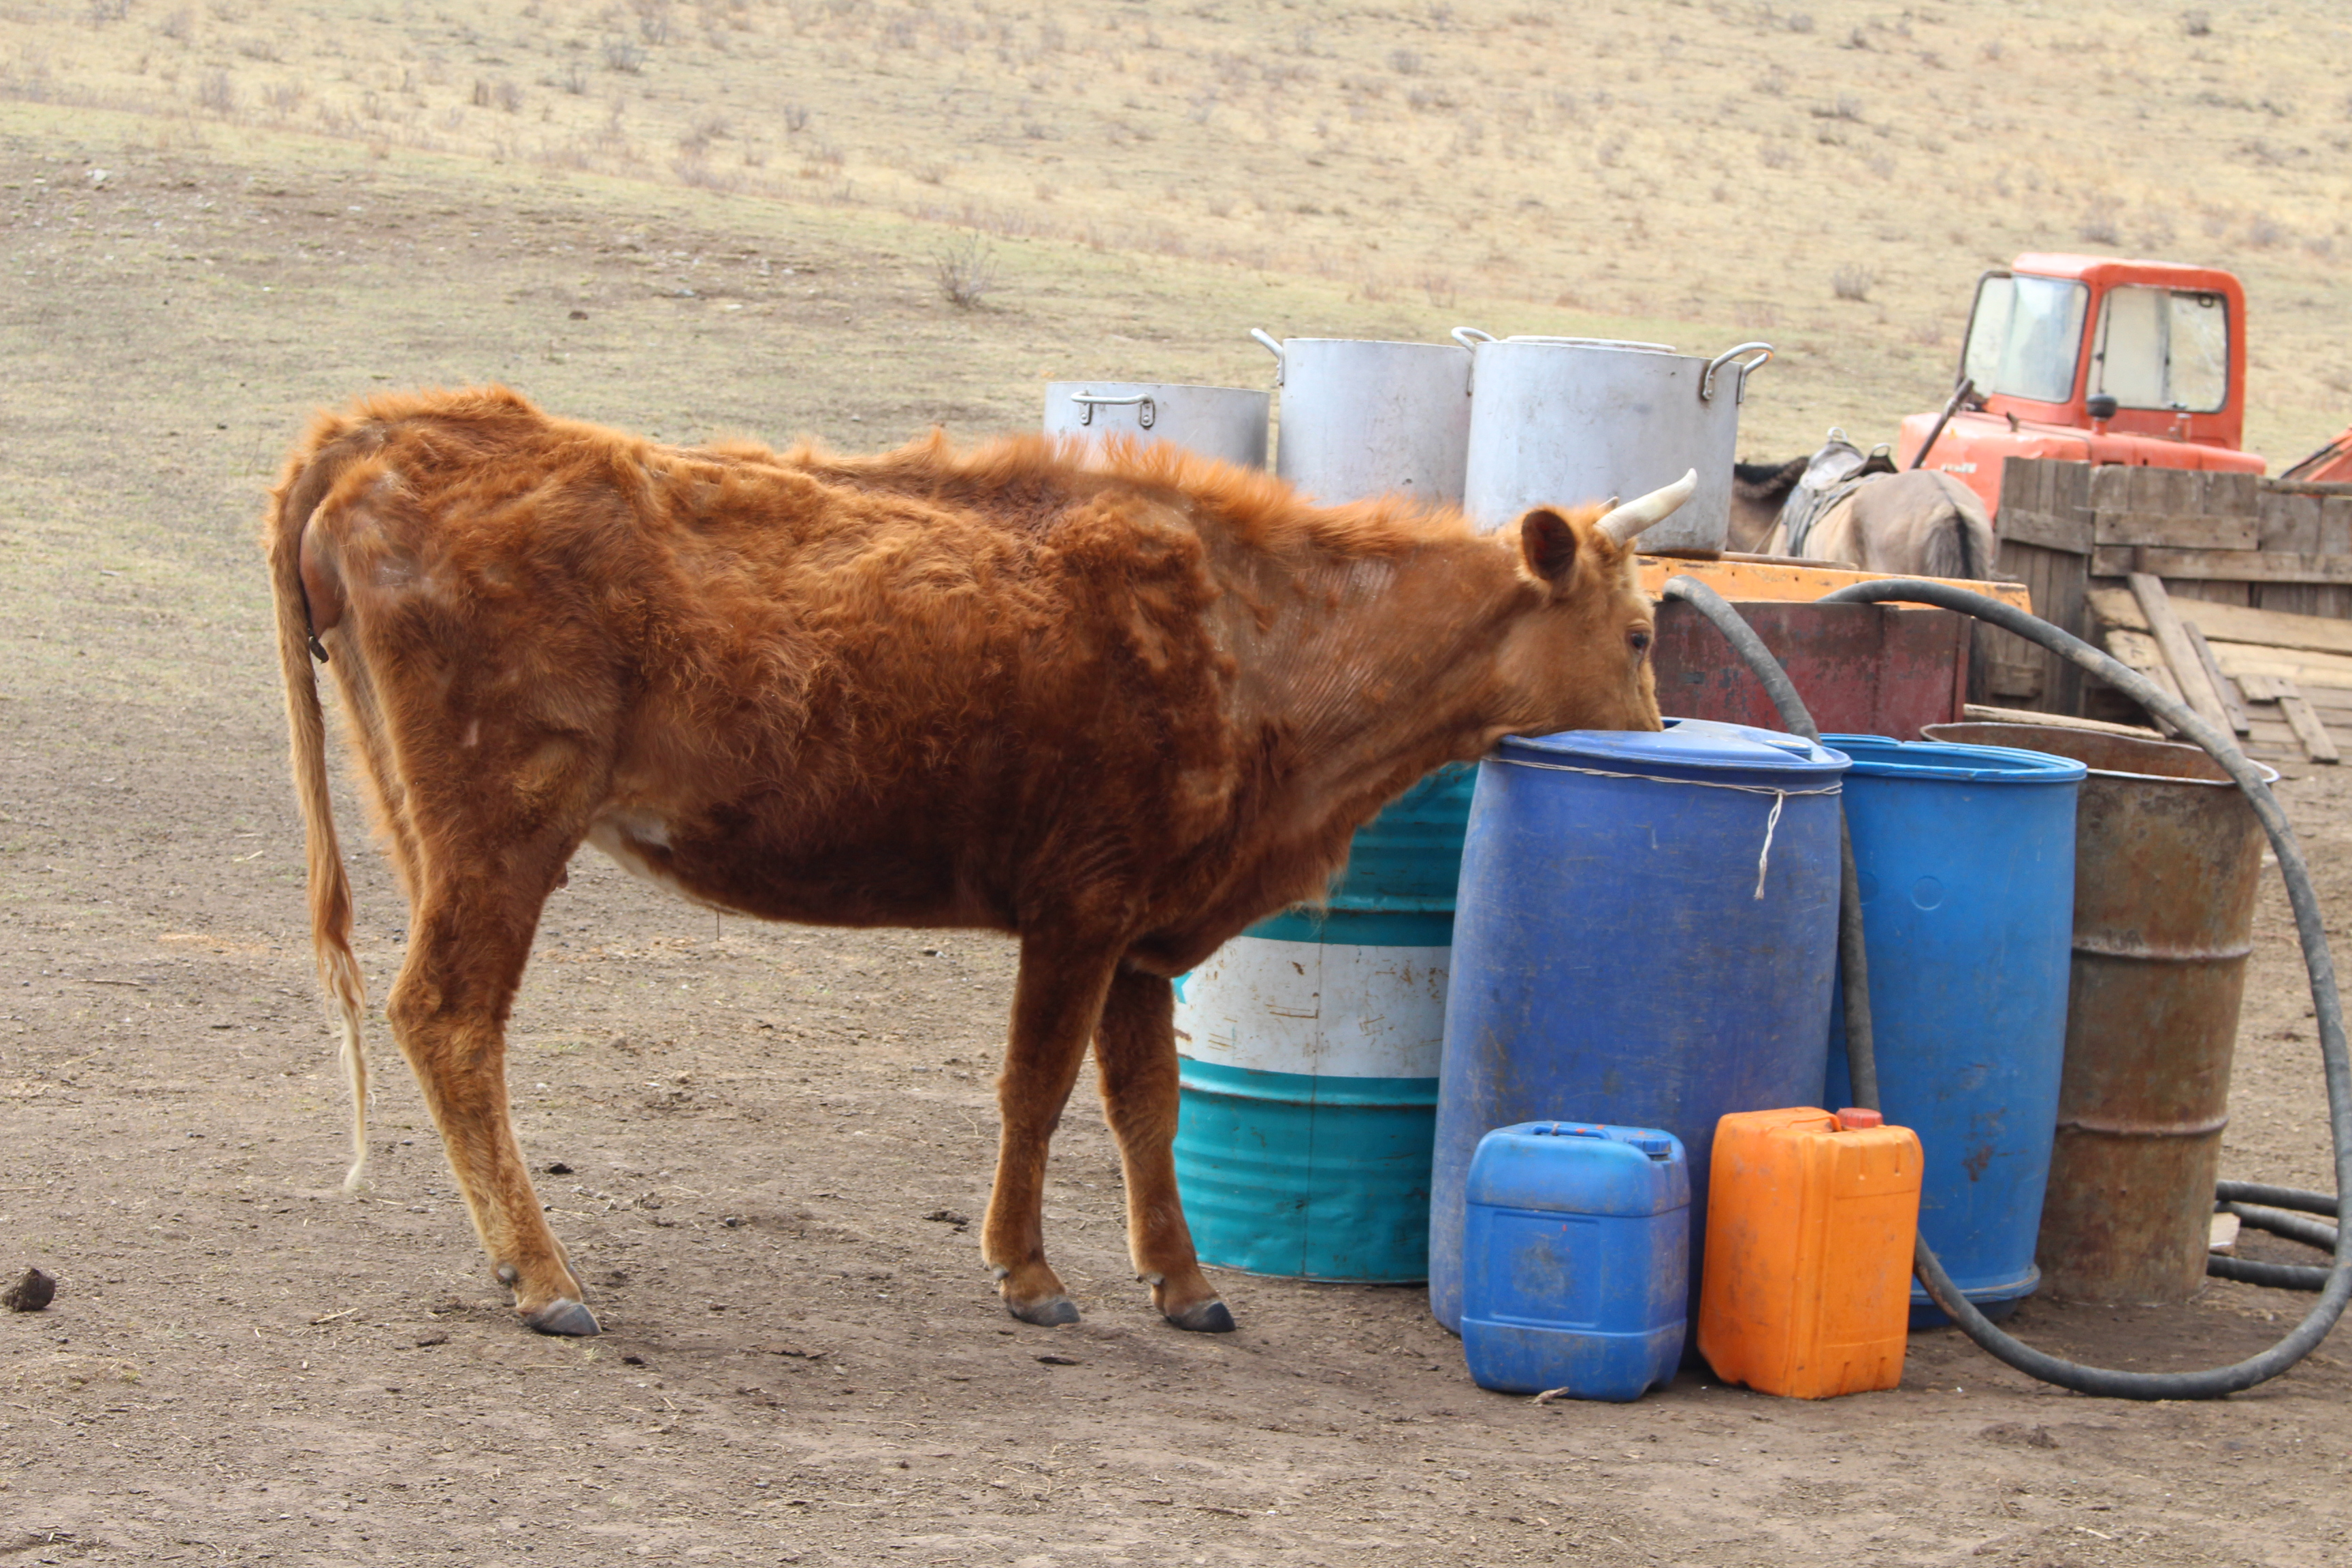 <p>Cattle also rely on local water. Photo by Zolbayar Bayasgalan</p>